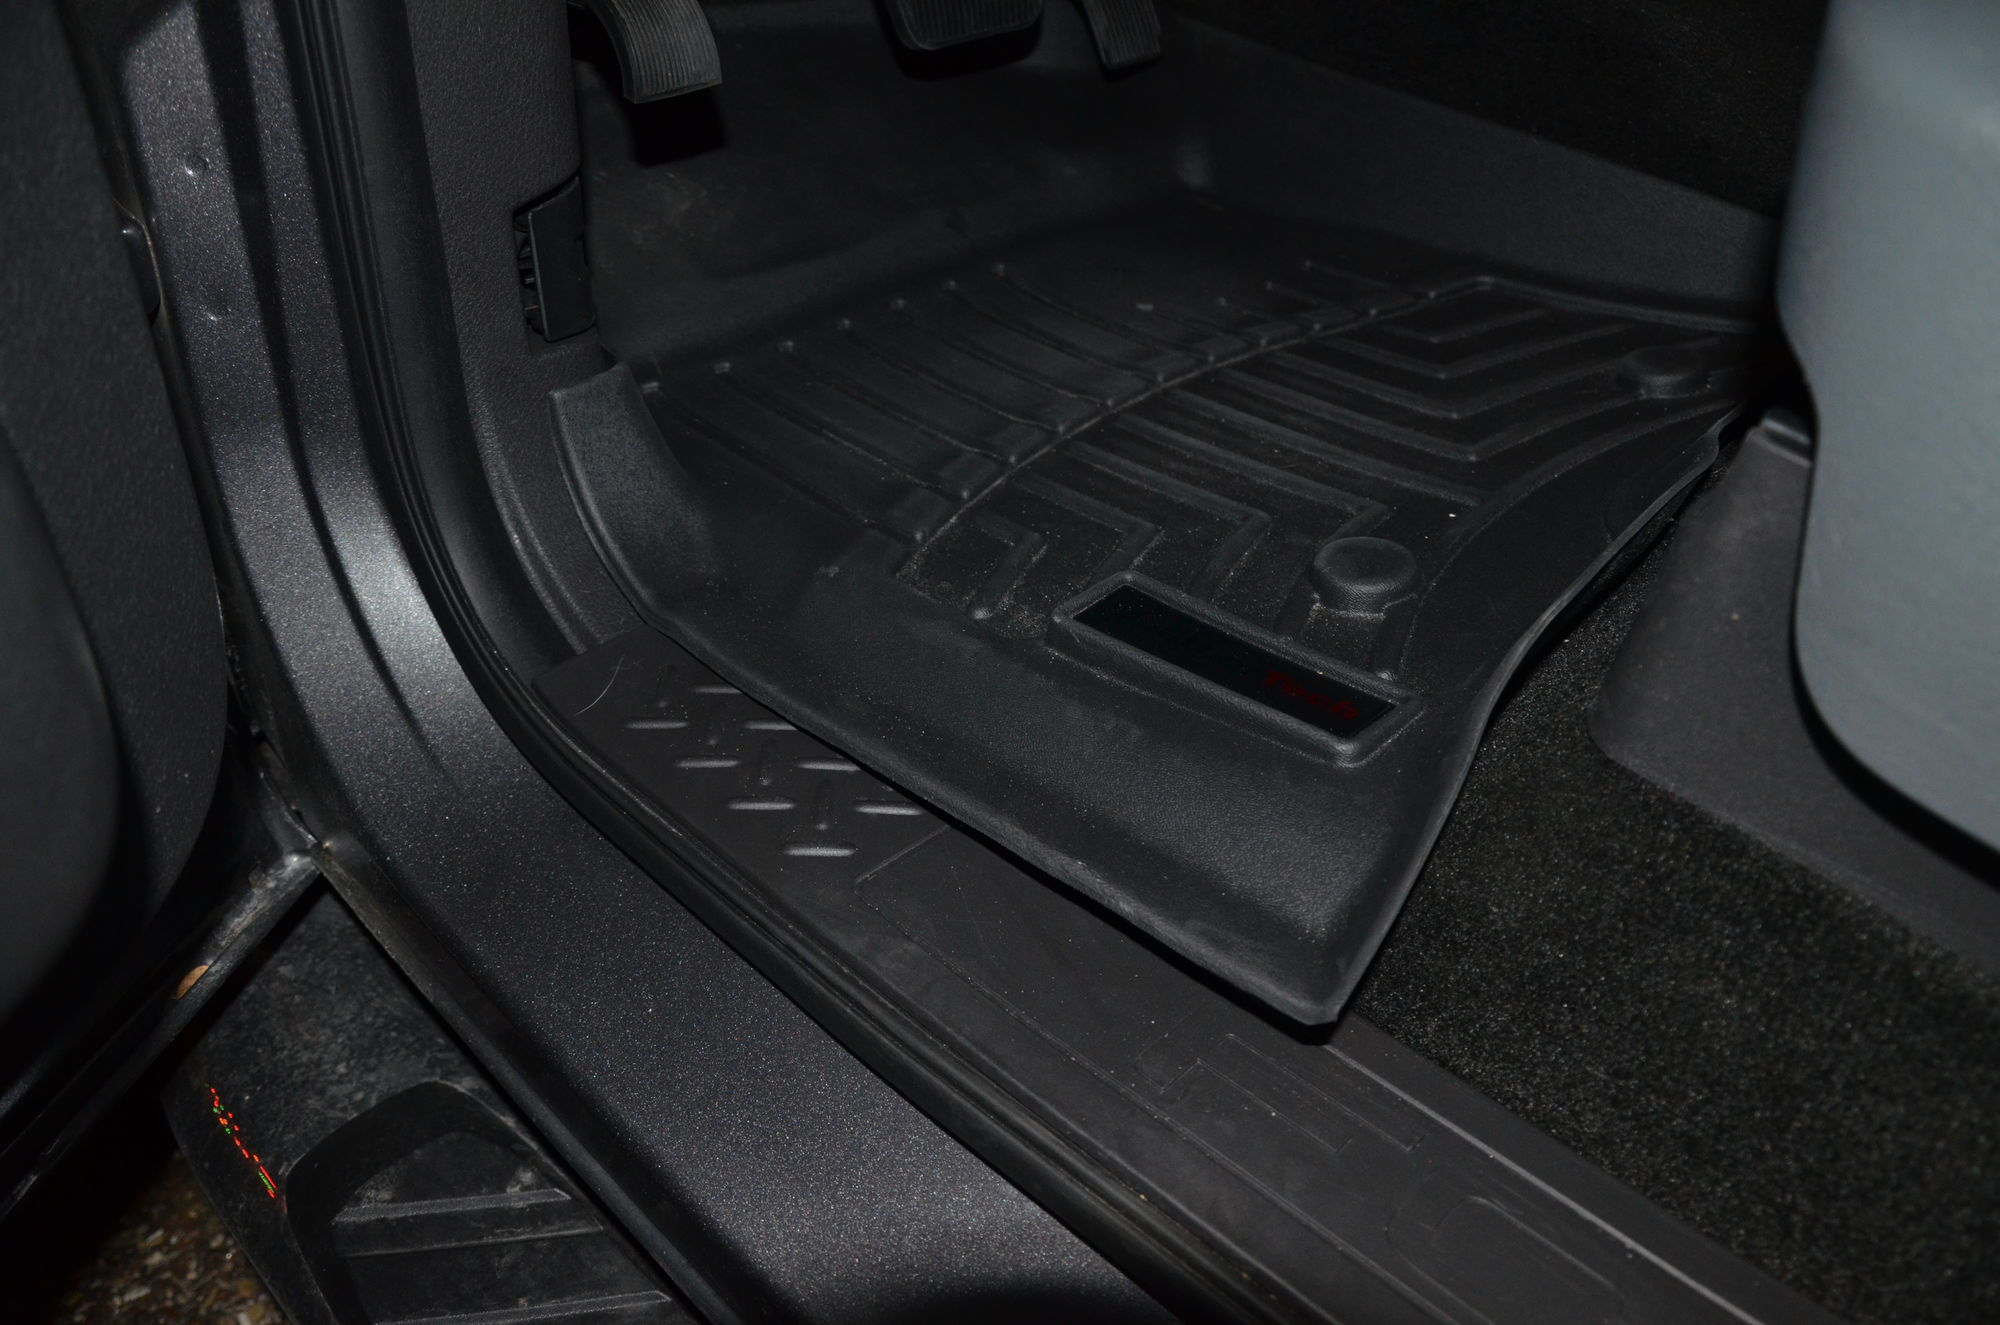 Weathertech mats not laying flat - Could Be You Ve Received The Wrong Item For Your Particular Model Looks Like The Mat S Overlapping The Sill Place By A Good Margin Weathertech